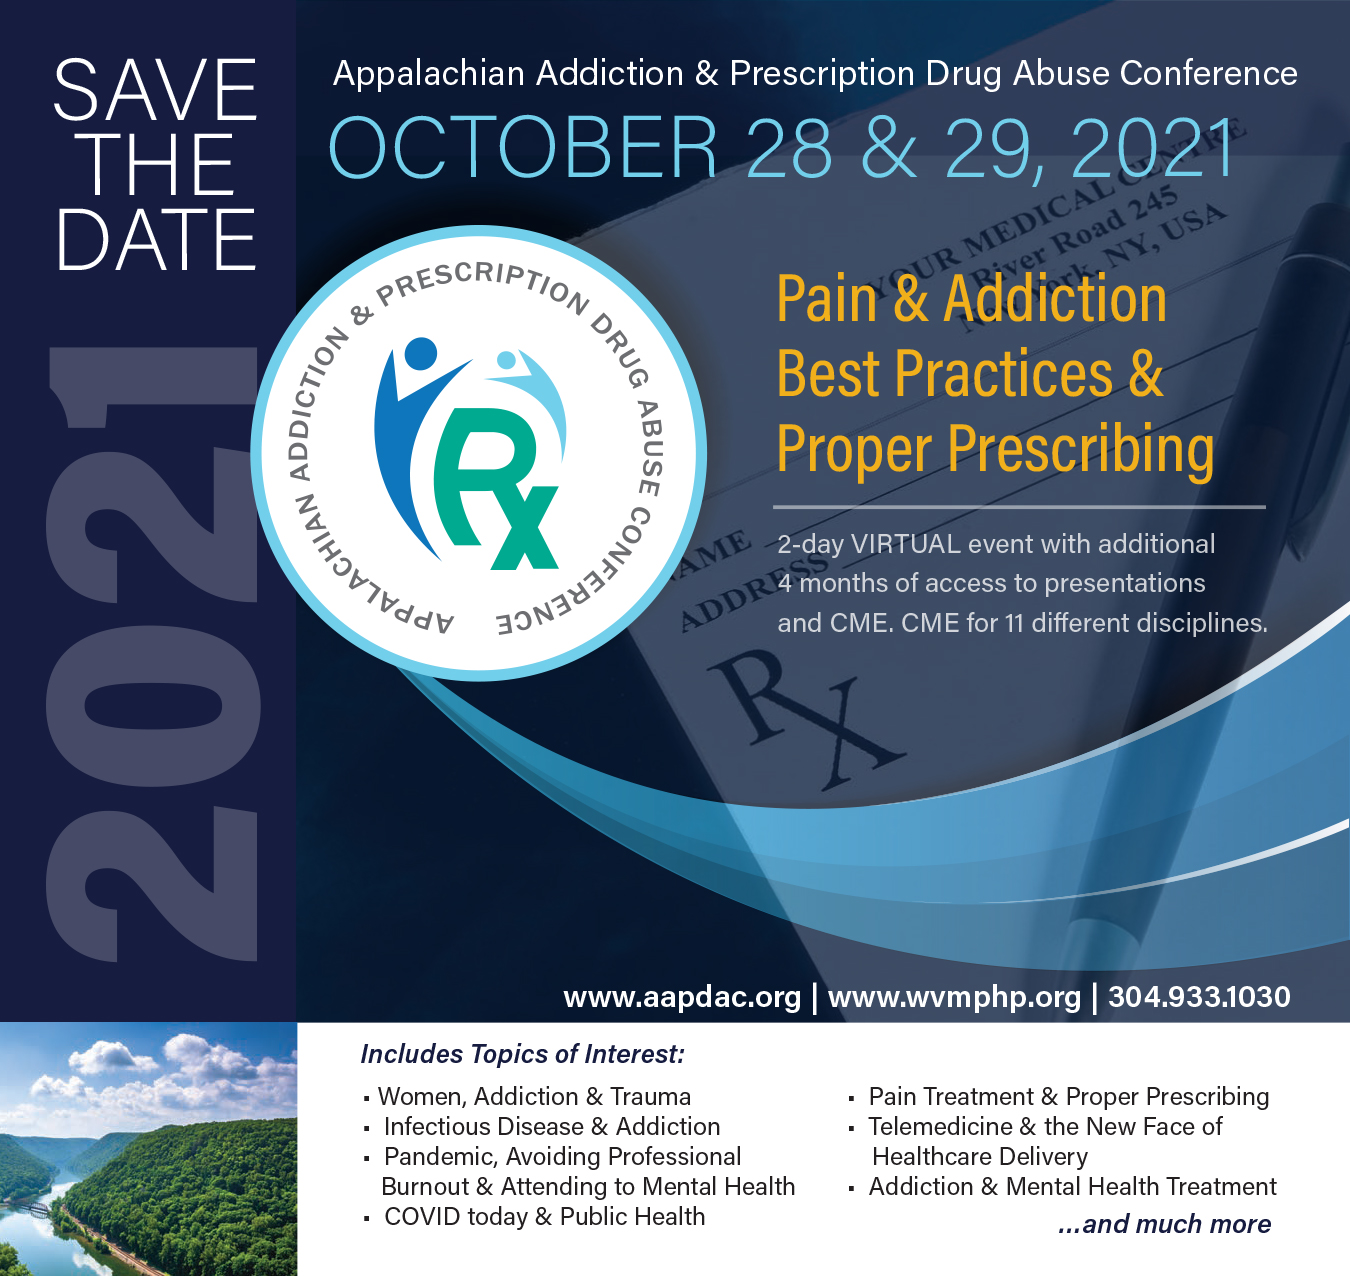 SAVE THE DATE: Appalachian Addiction and Prescription Drug Abuse Conference / October 28-29, 2021